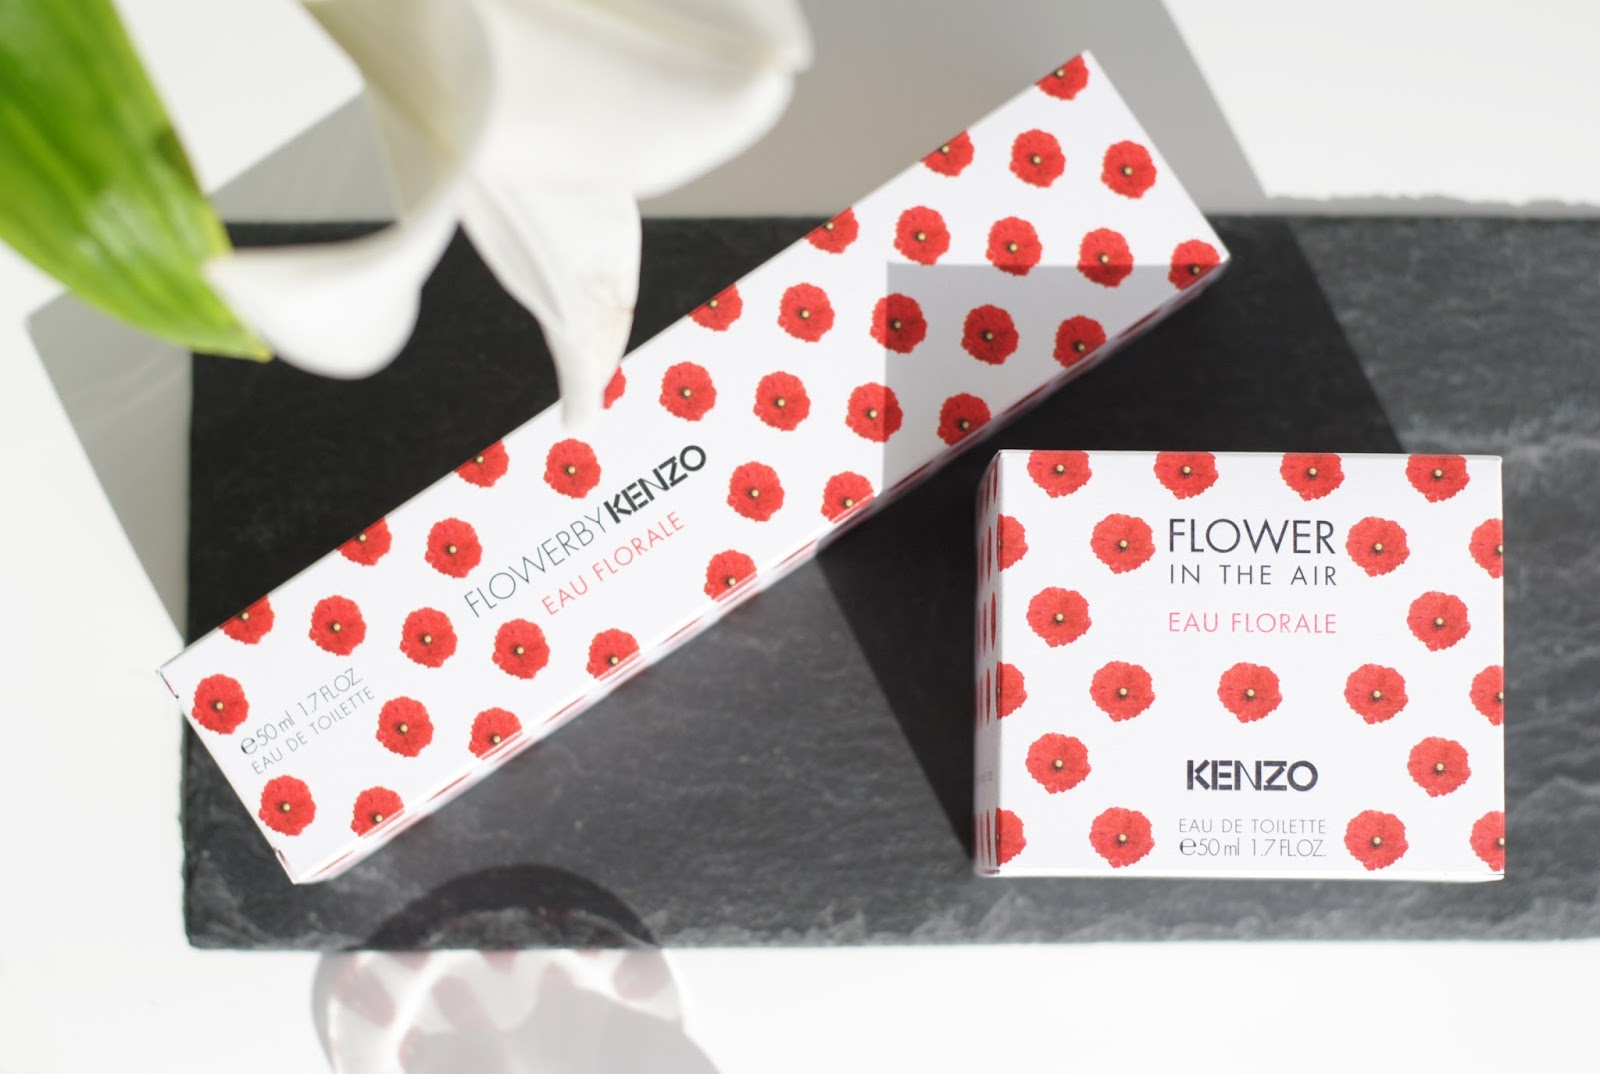 flower by kenzo flower in the air eau floral